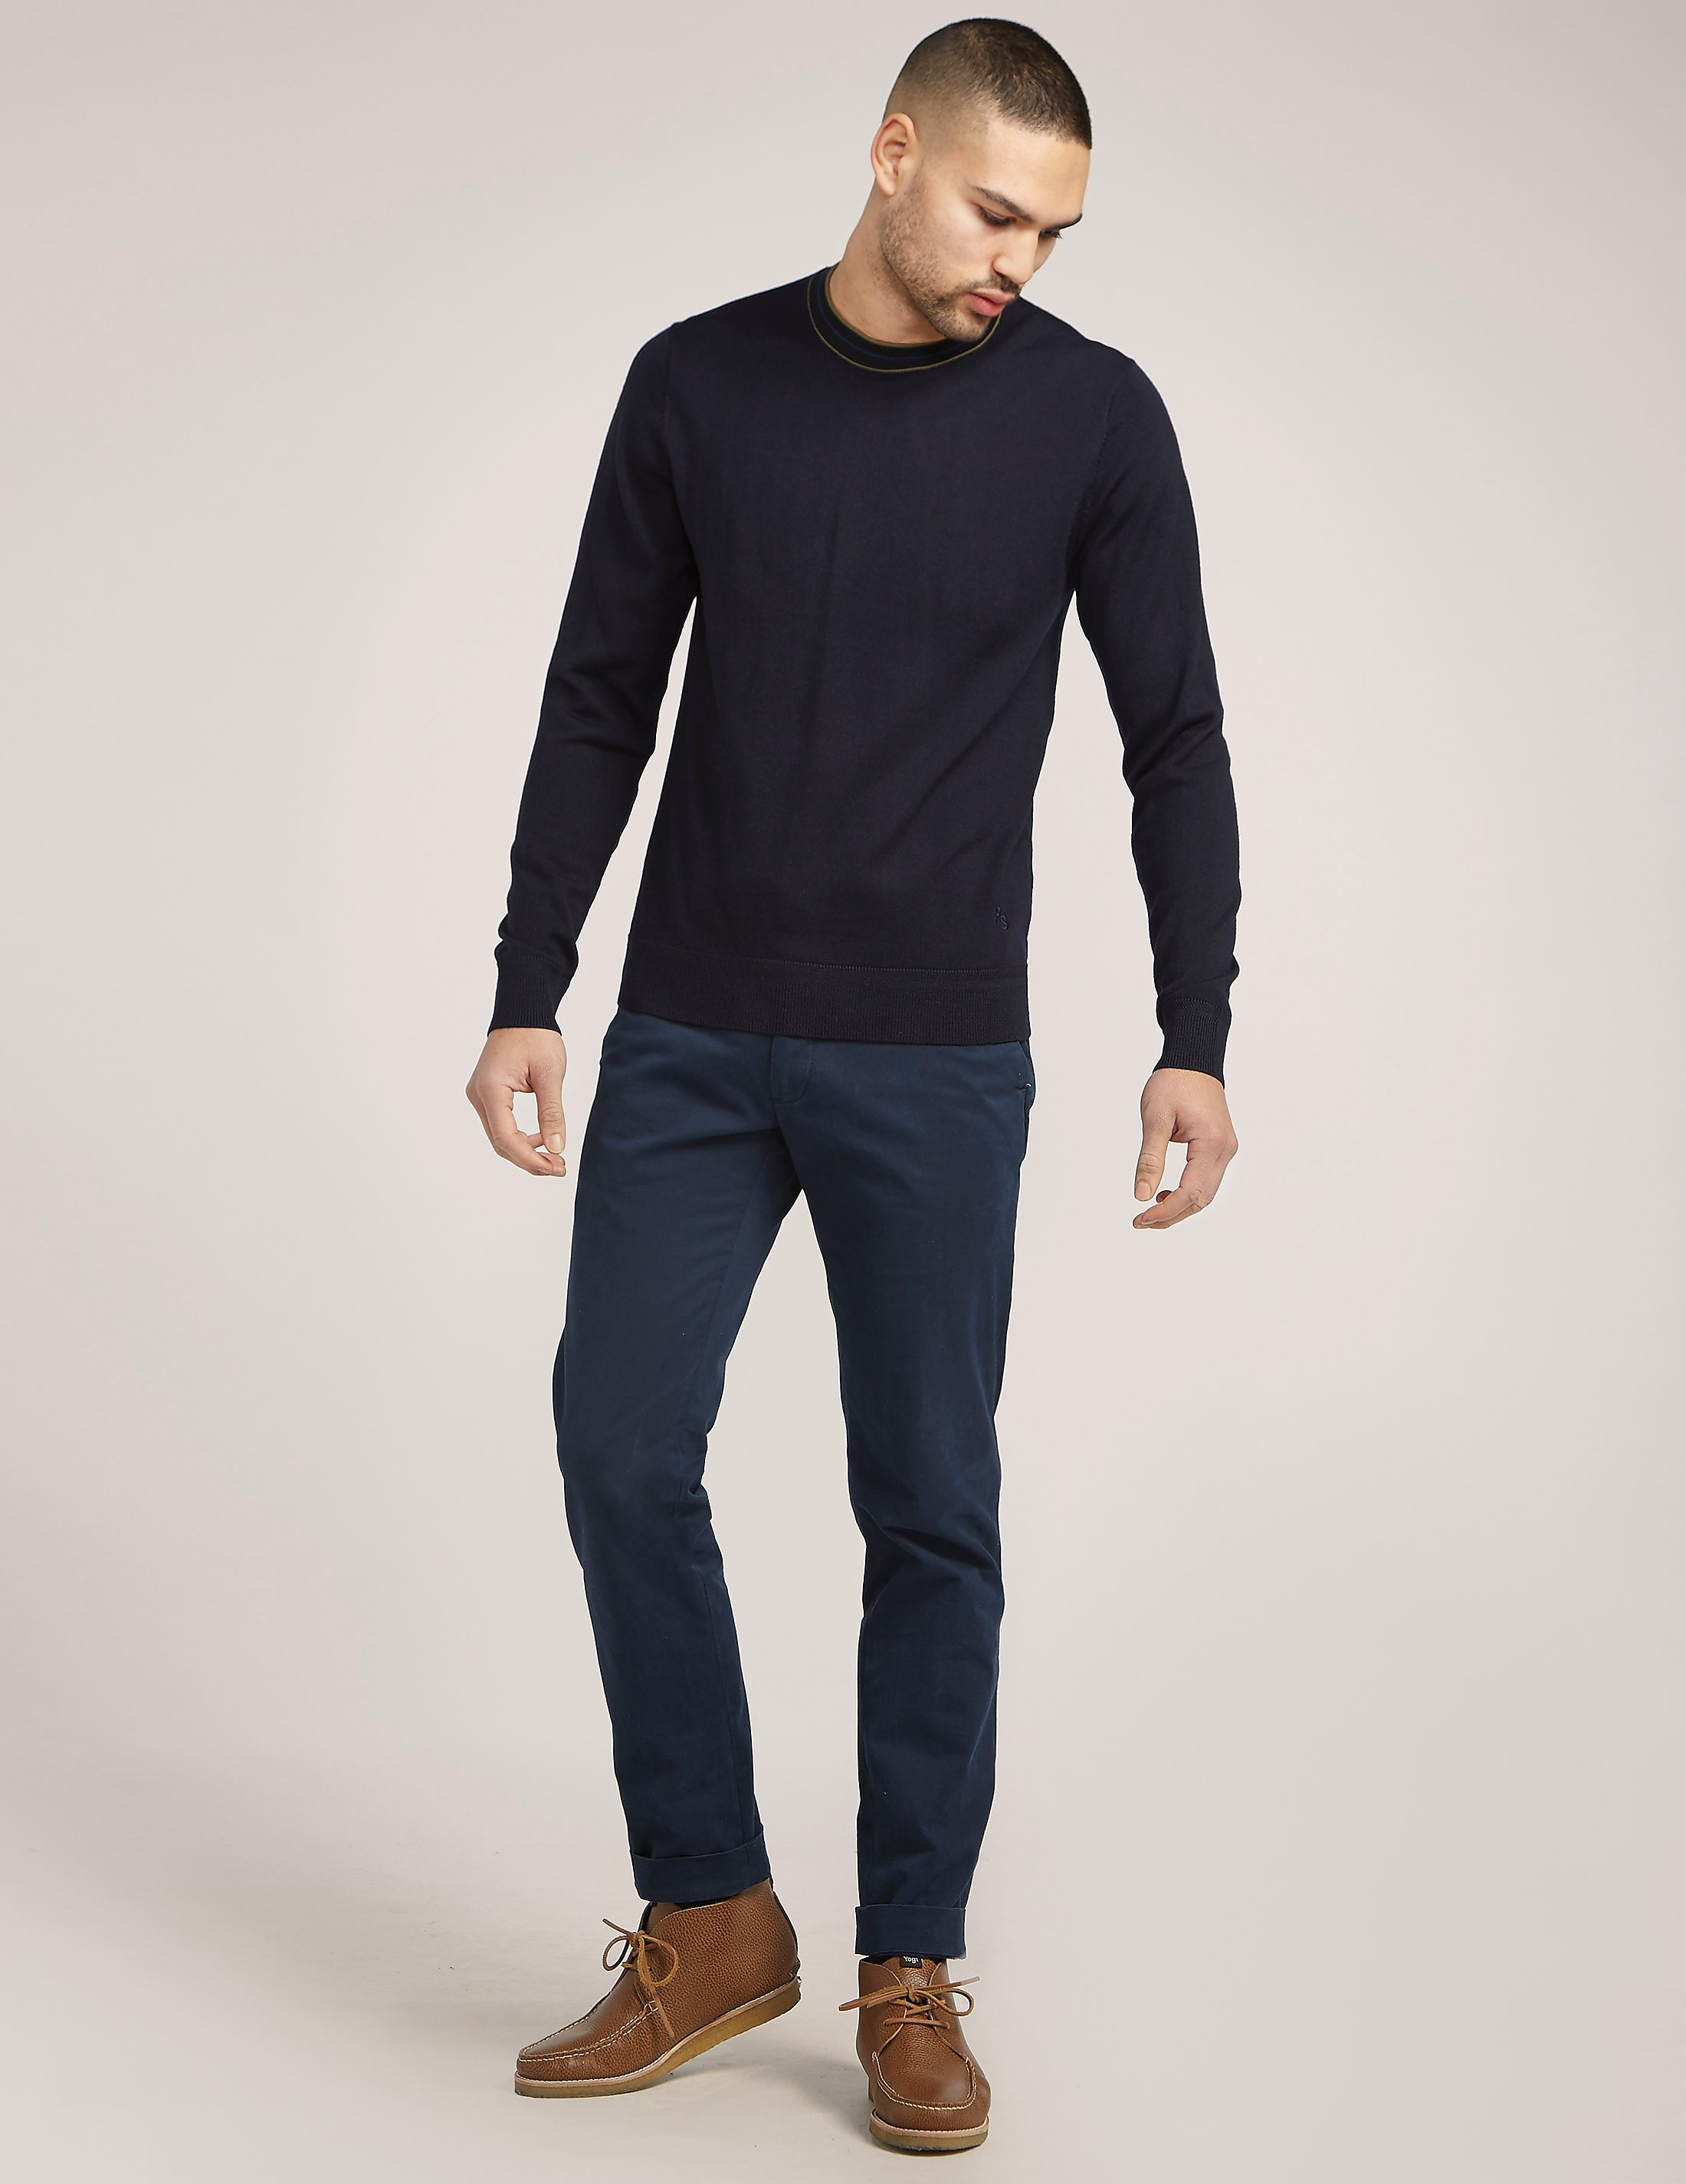 Paul Smith Contrast Collar Wool Knit